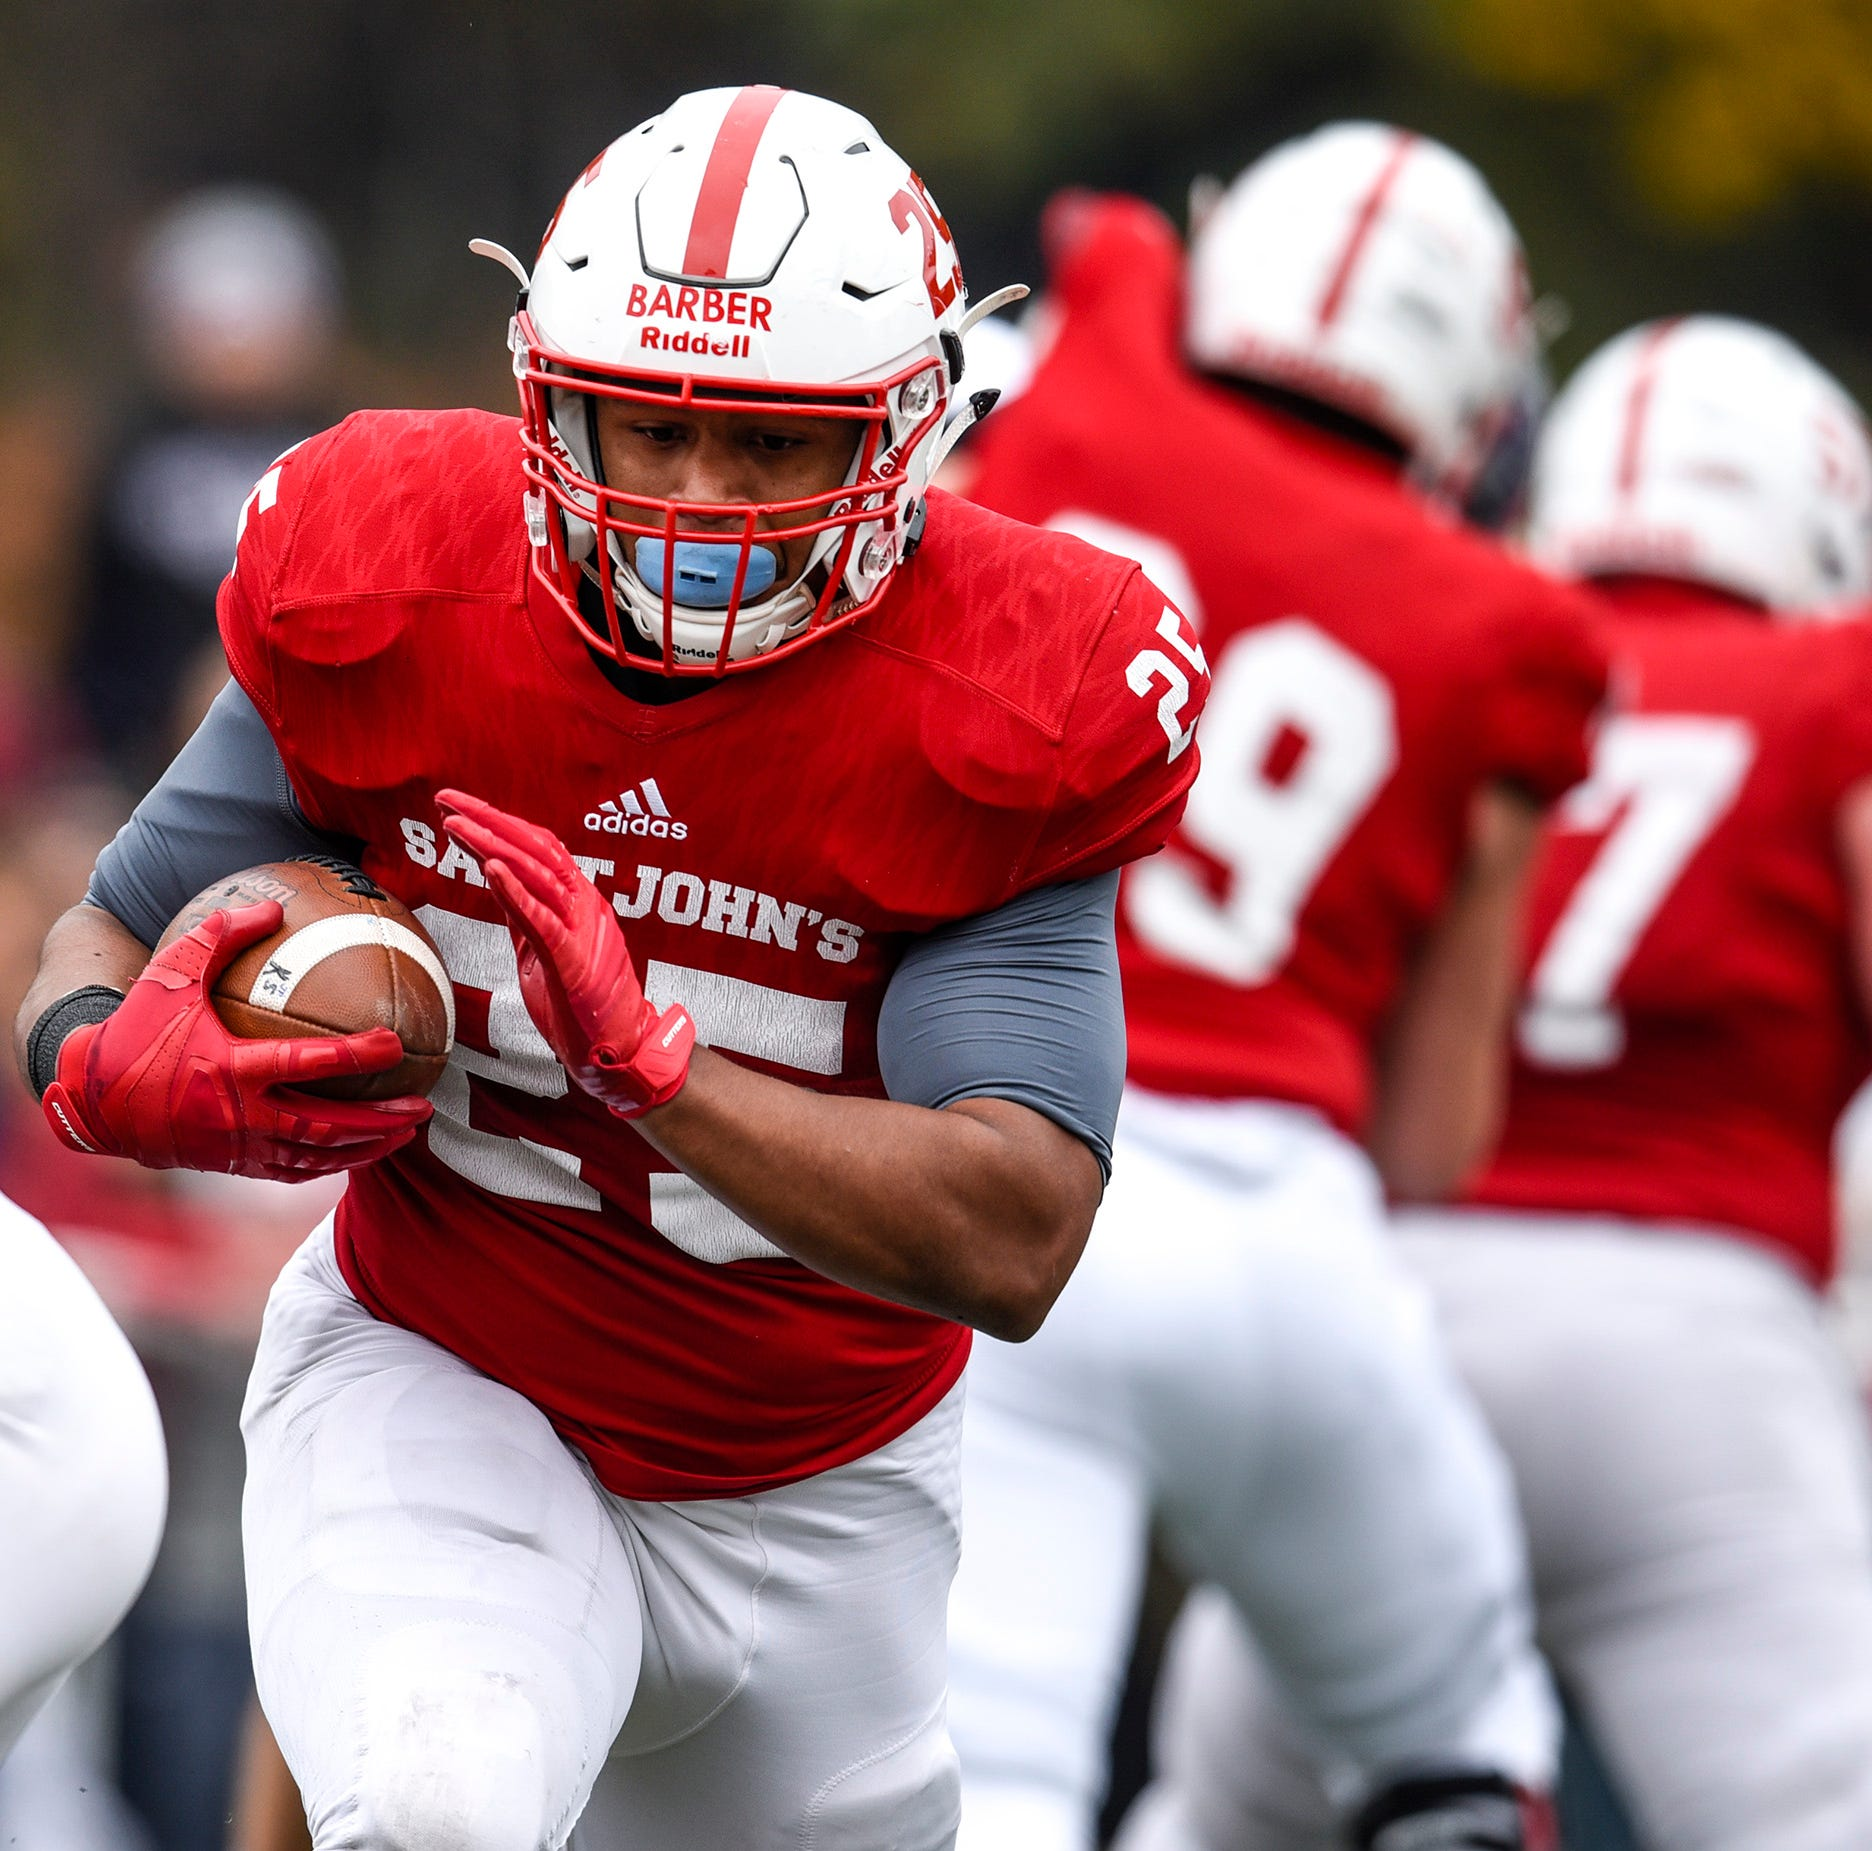 St. John's running back Kai Barber breaks through the St. Thomas defense for a gain during the first half Saturday, Oct. 13, in Collegeville.